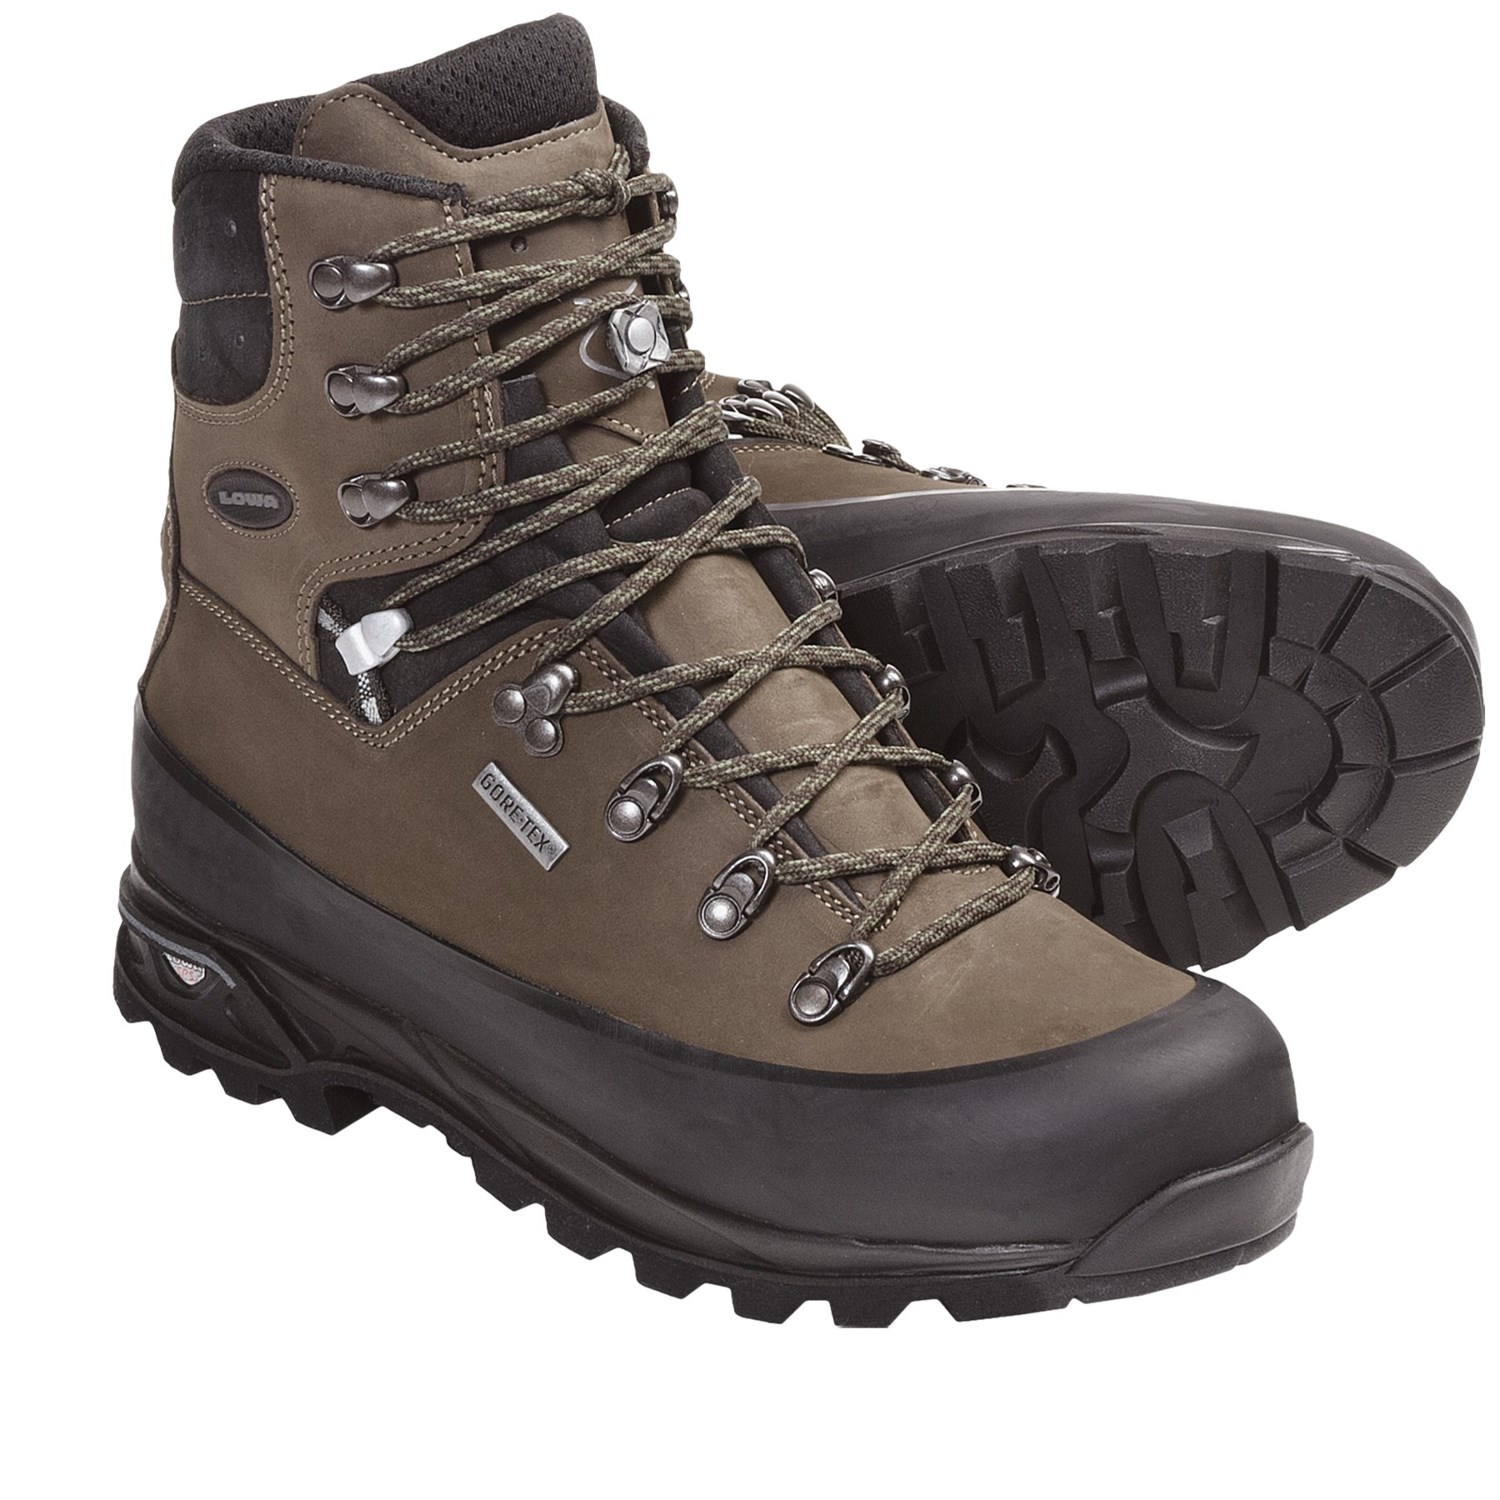 Hiking Boots Vs Hiking Shoes